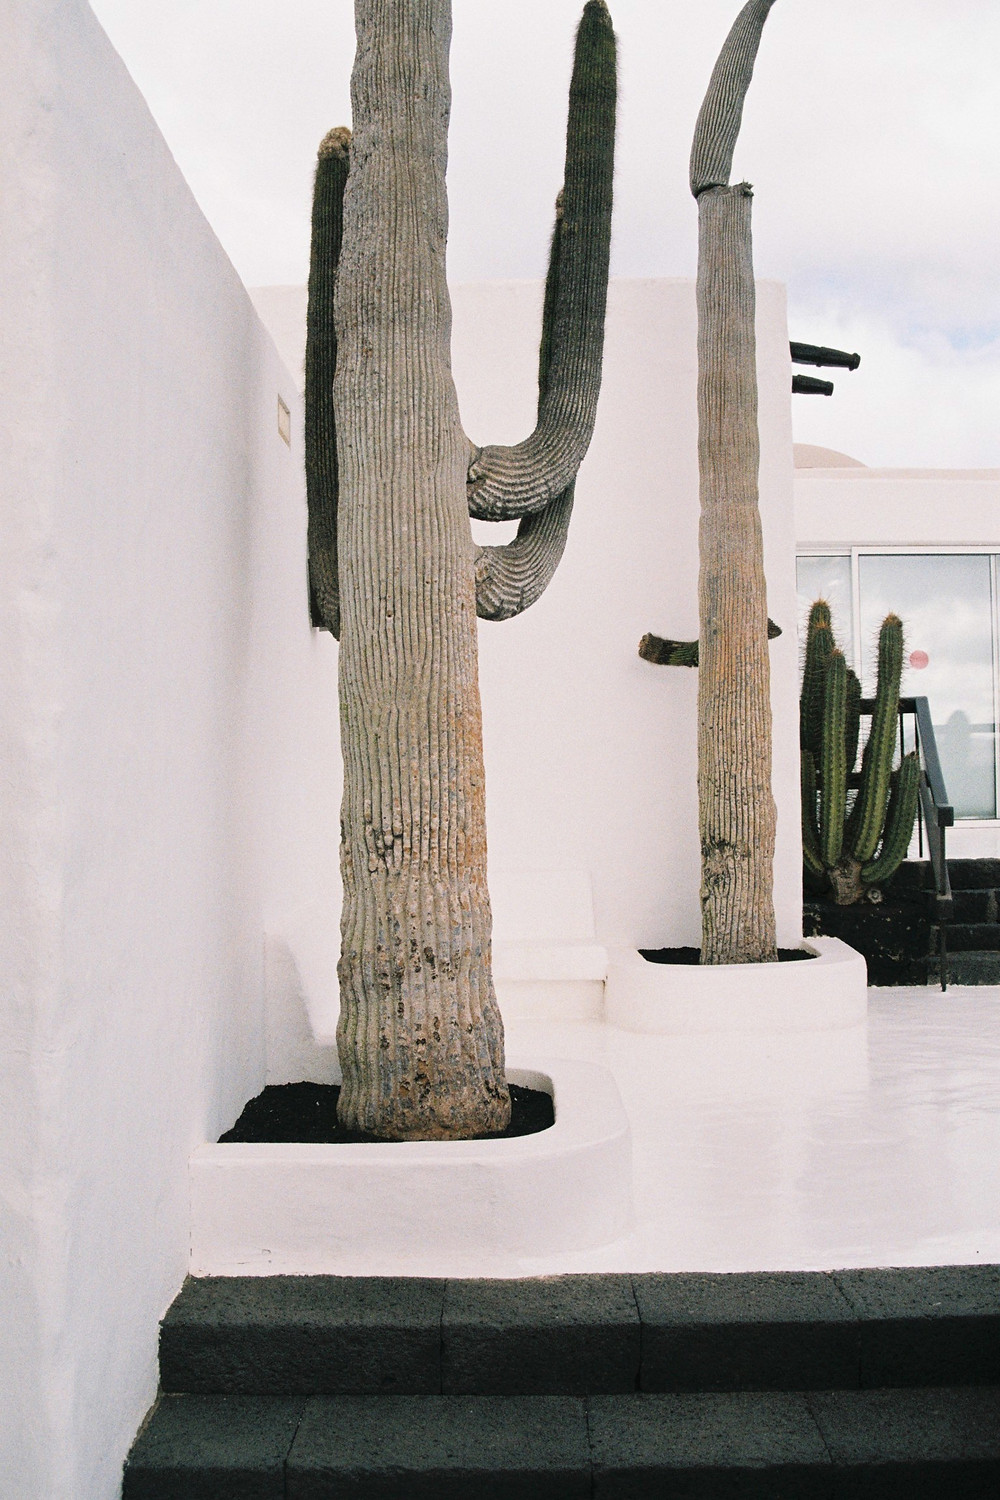 Fundación César Manrique, Lanzarote Spain, captured by Studio Joko